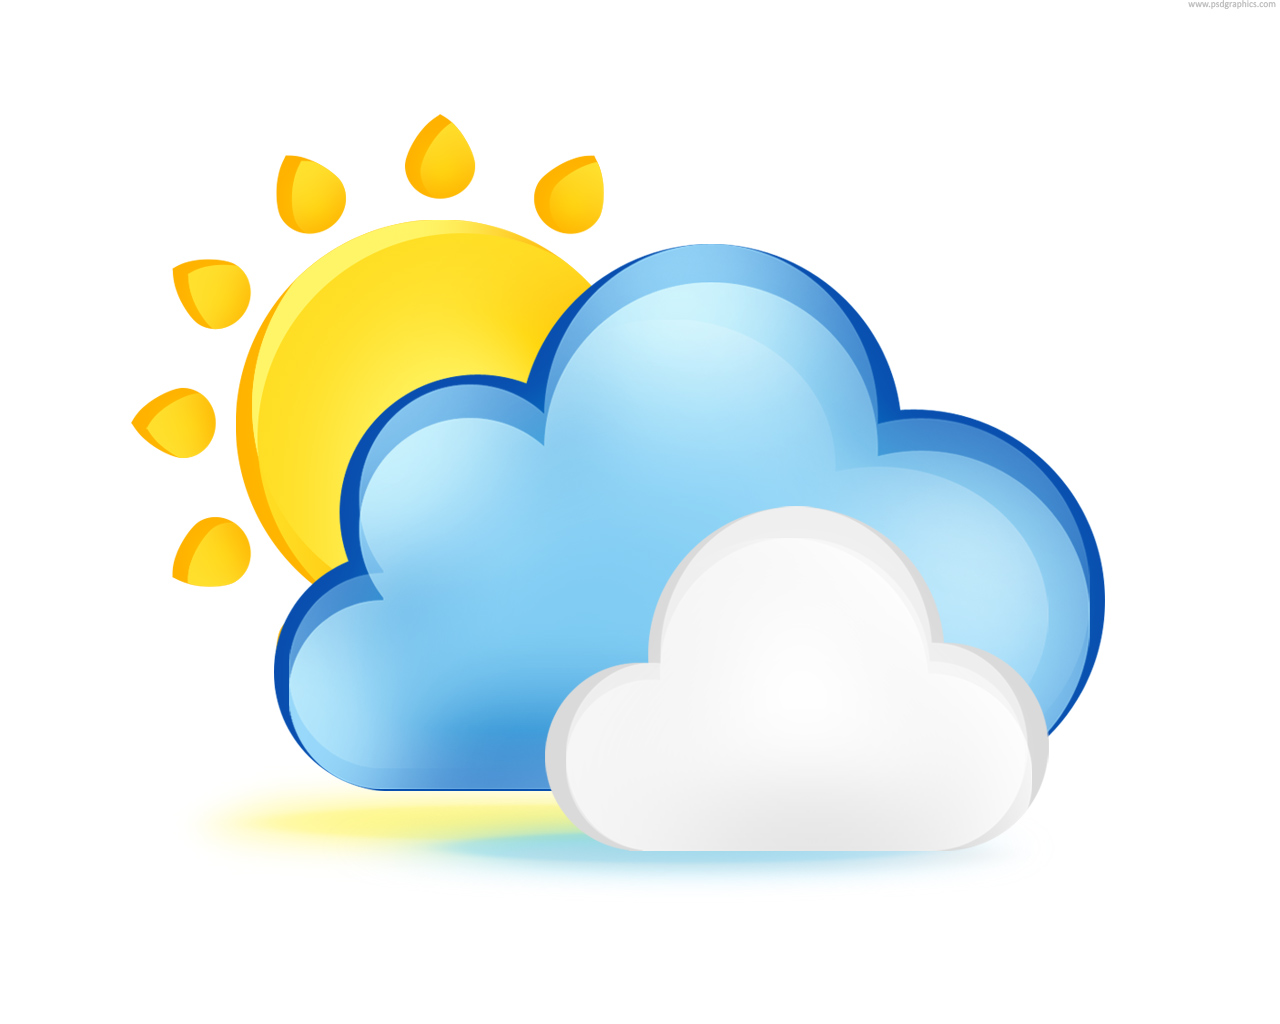 12 Summer Weather Icon Images